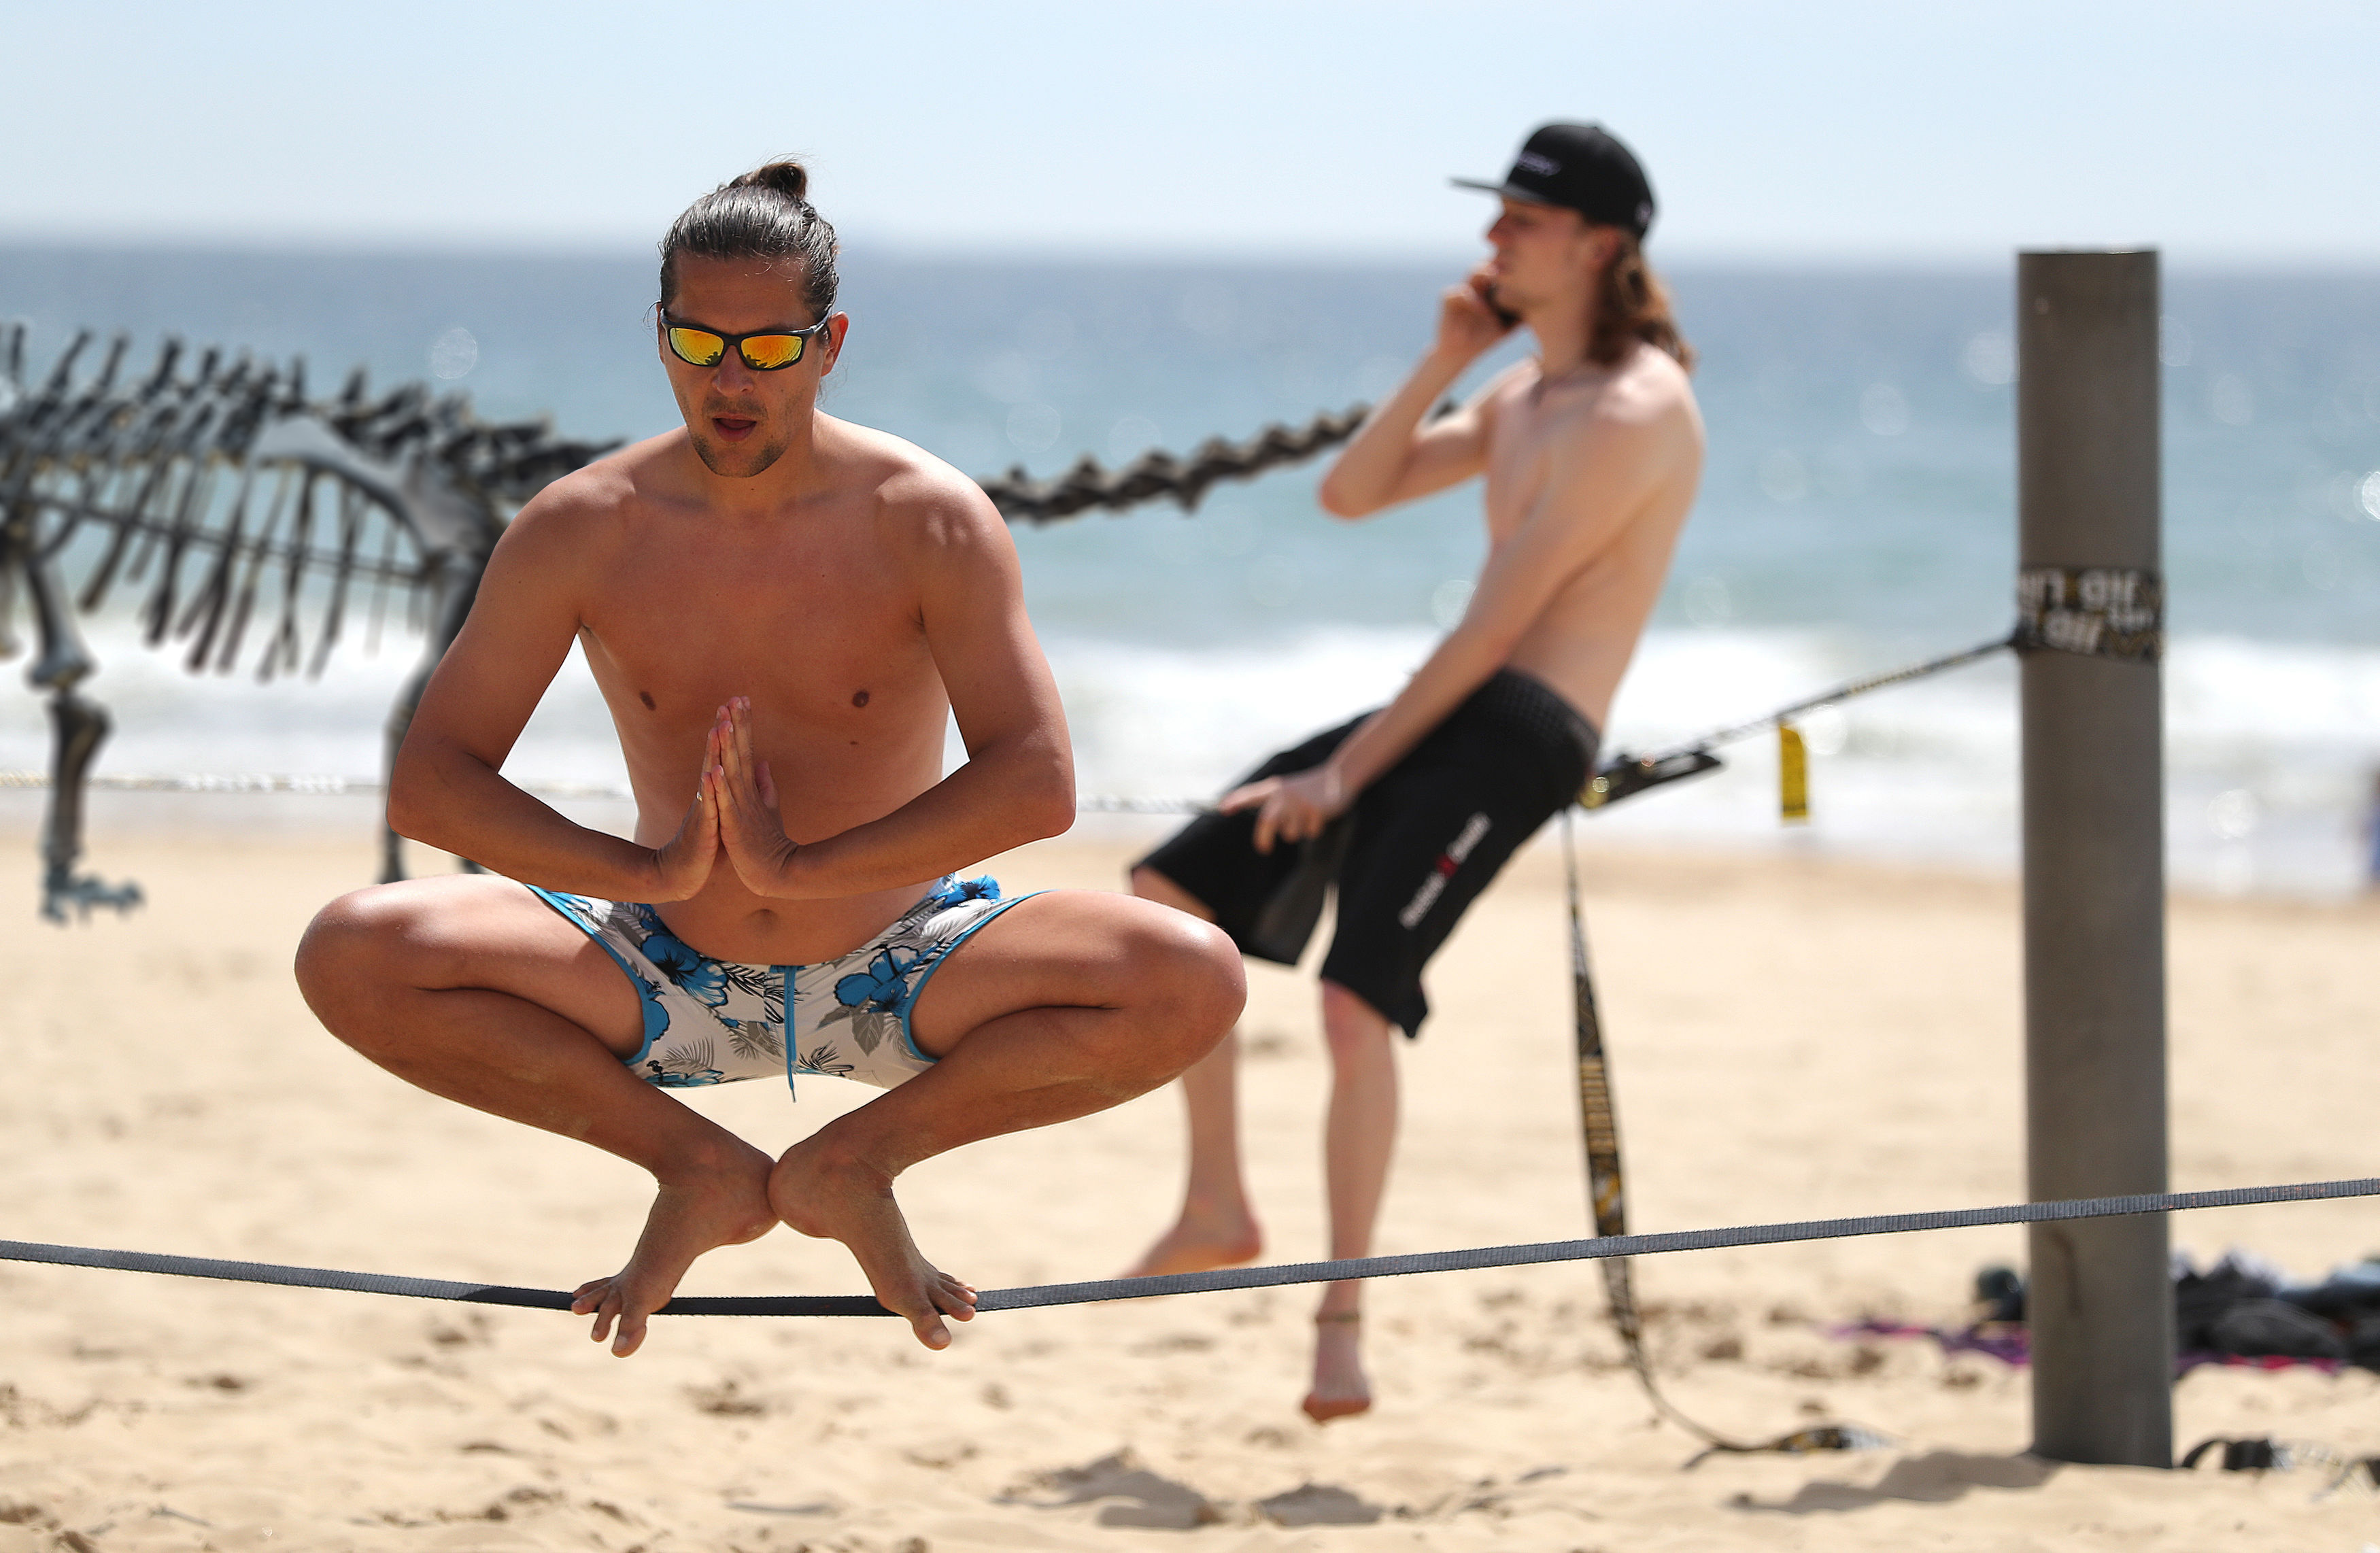 Two slackliners practice on Bournemouth beach in Dorset as forecasters predict that a wave of warm air will move across the country in the coming days.